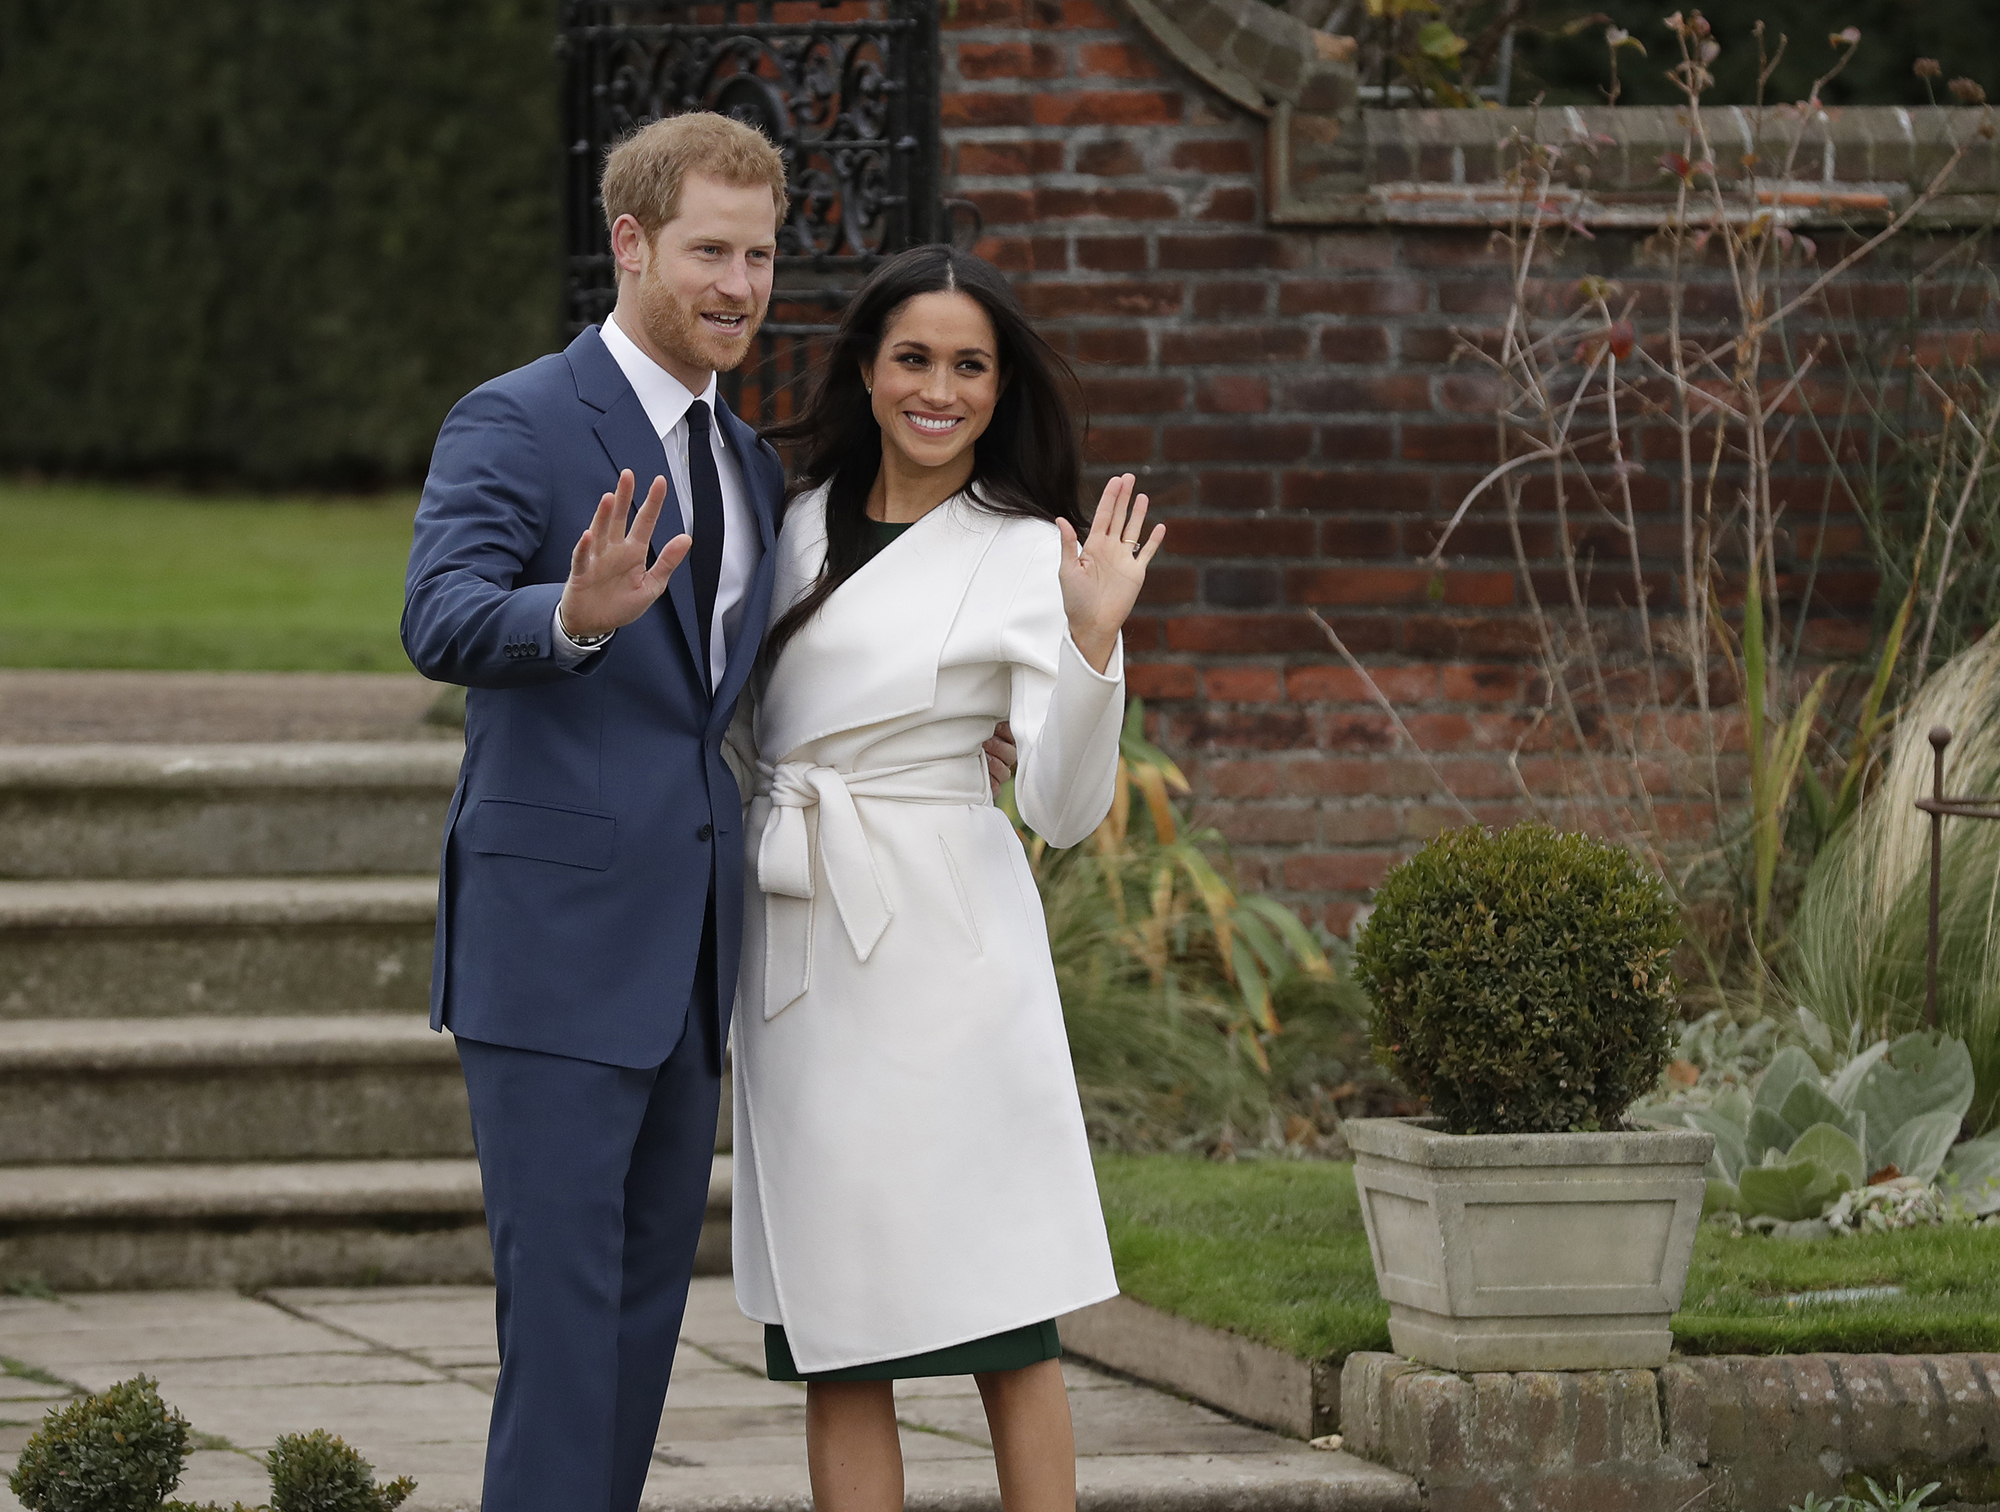 "<div class=""meta image-caption""><div class=""origin-logo origin-image ap""><span>AP</span></div><span class=""caption-text"">Britain's Prince Harry and his fiancee Meghan Markle pose for photographers during a photocall in the grounds of Kensington Palace in London, Monday Nov. 27, 2017. (AP Photo/Matt Dunham)</span></div>"